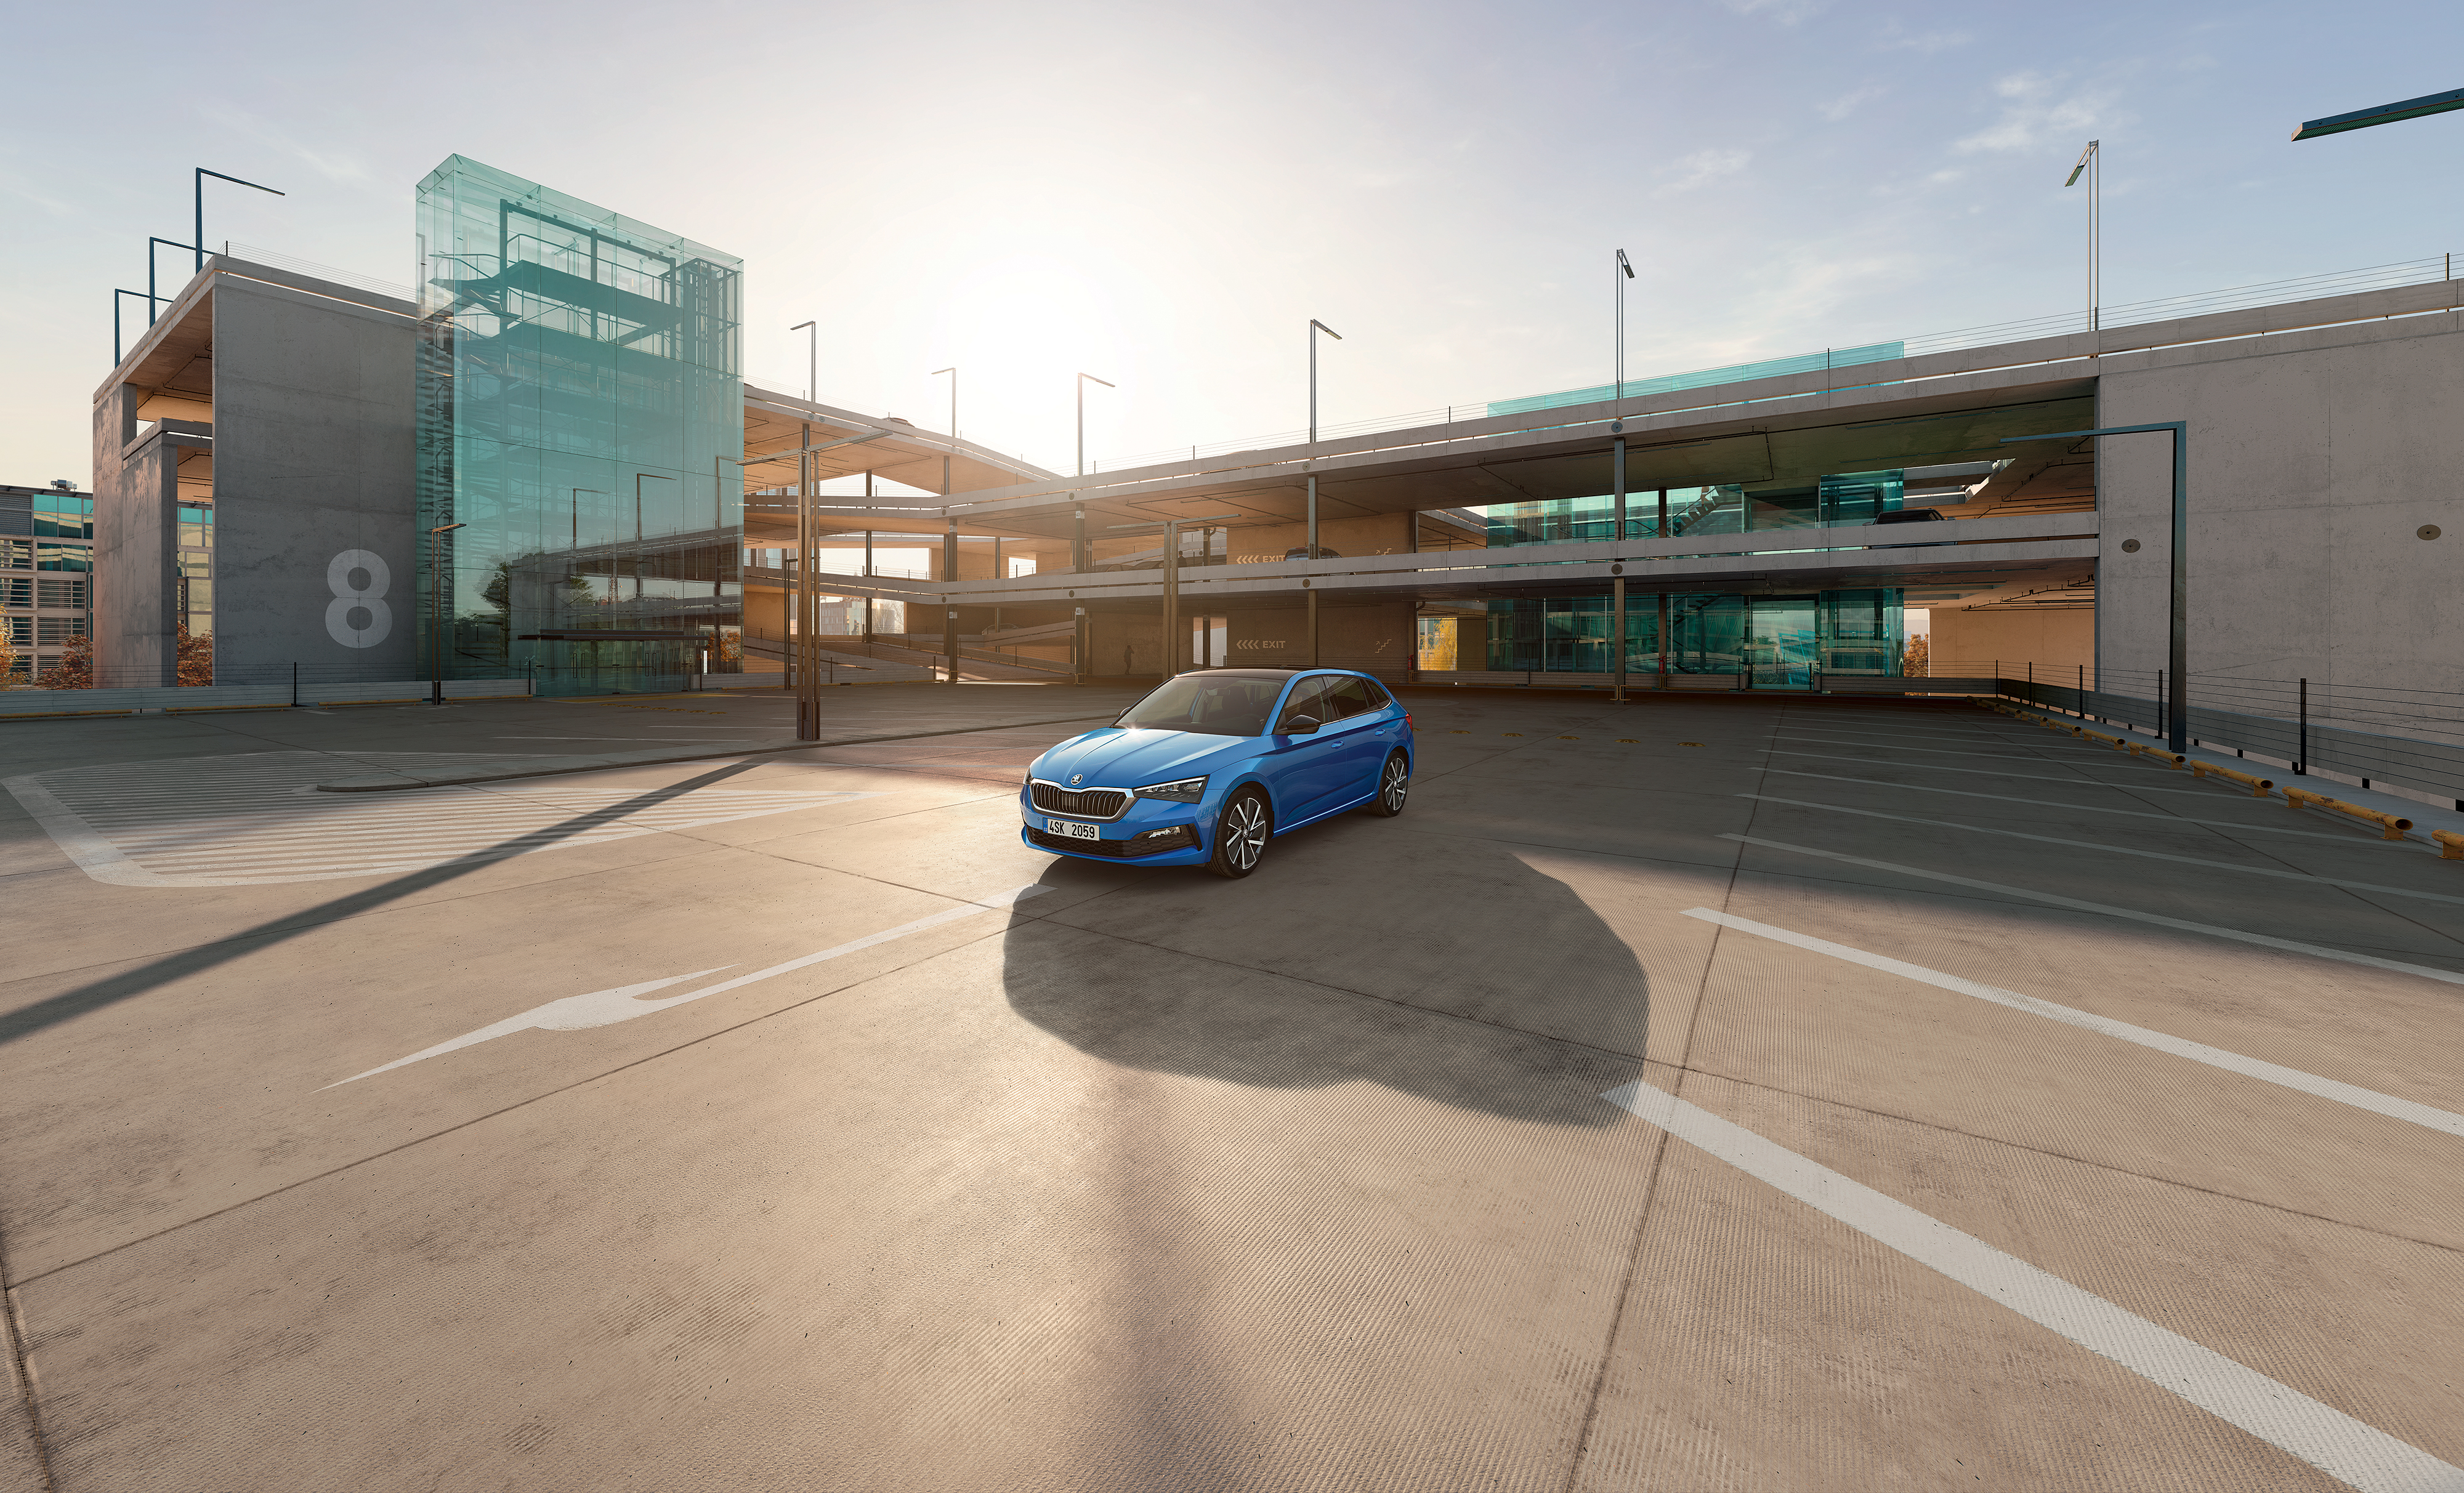 SKODA joins forces with Parkopedia to help drivers find parking spaces quicker and easier in real time - Image 2